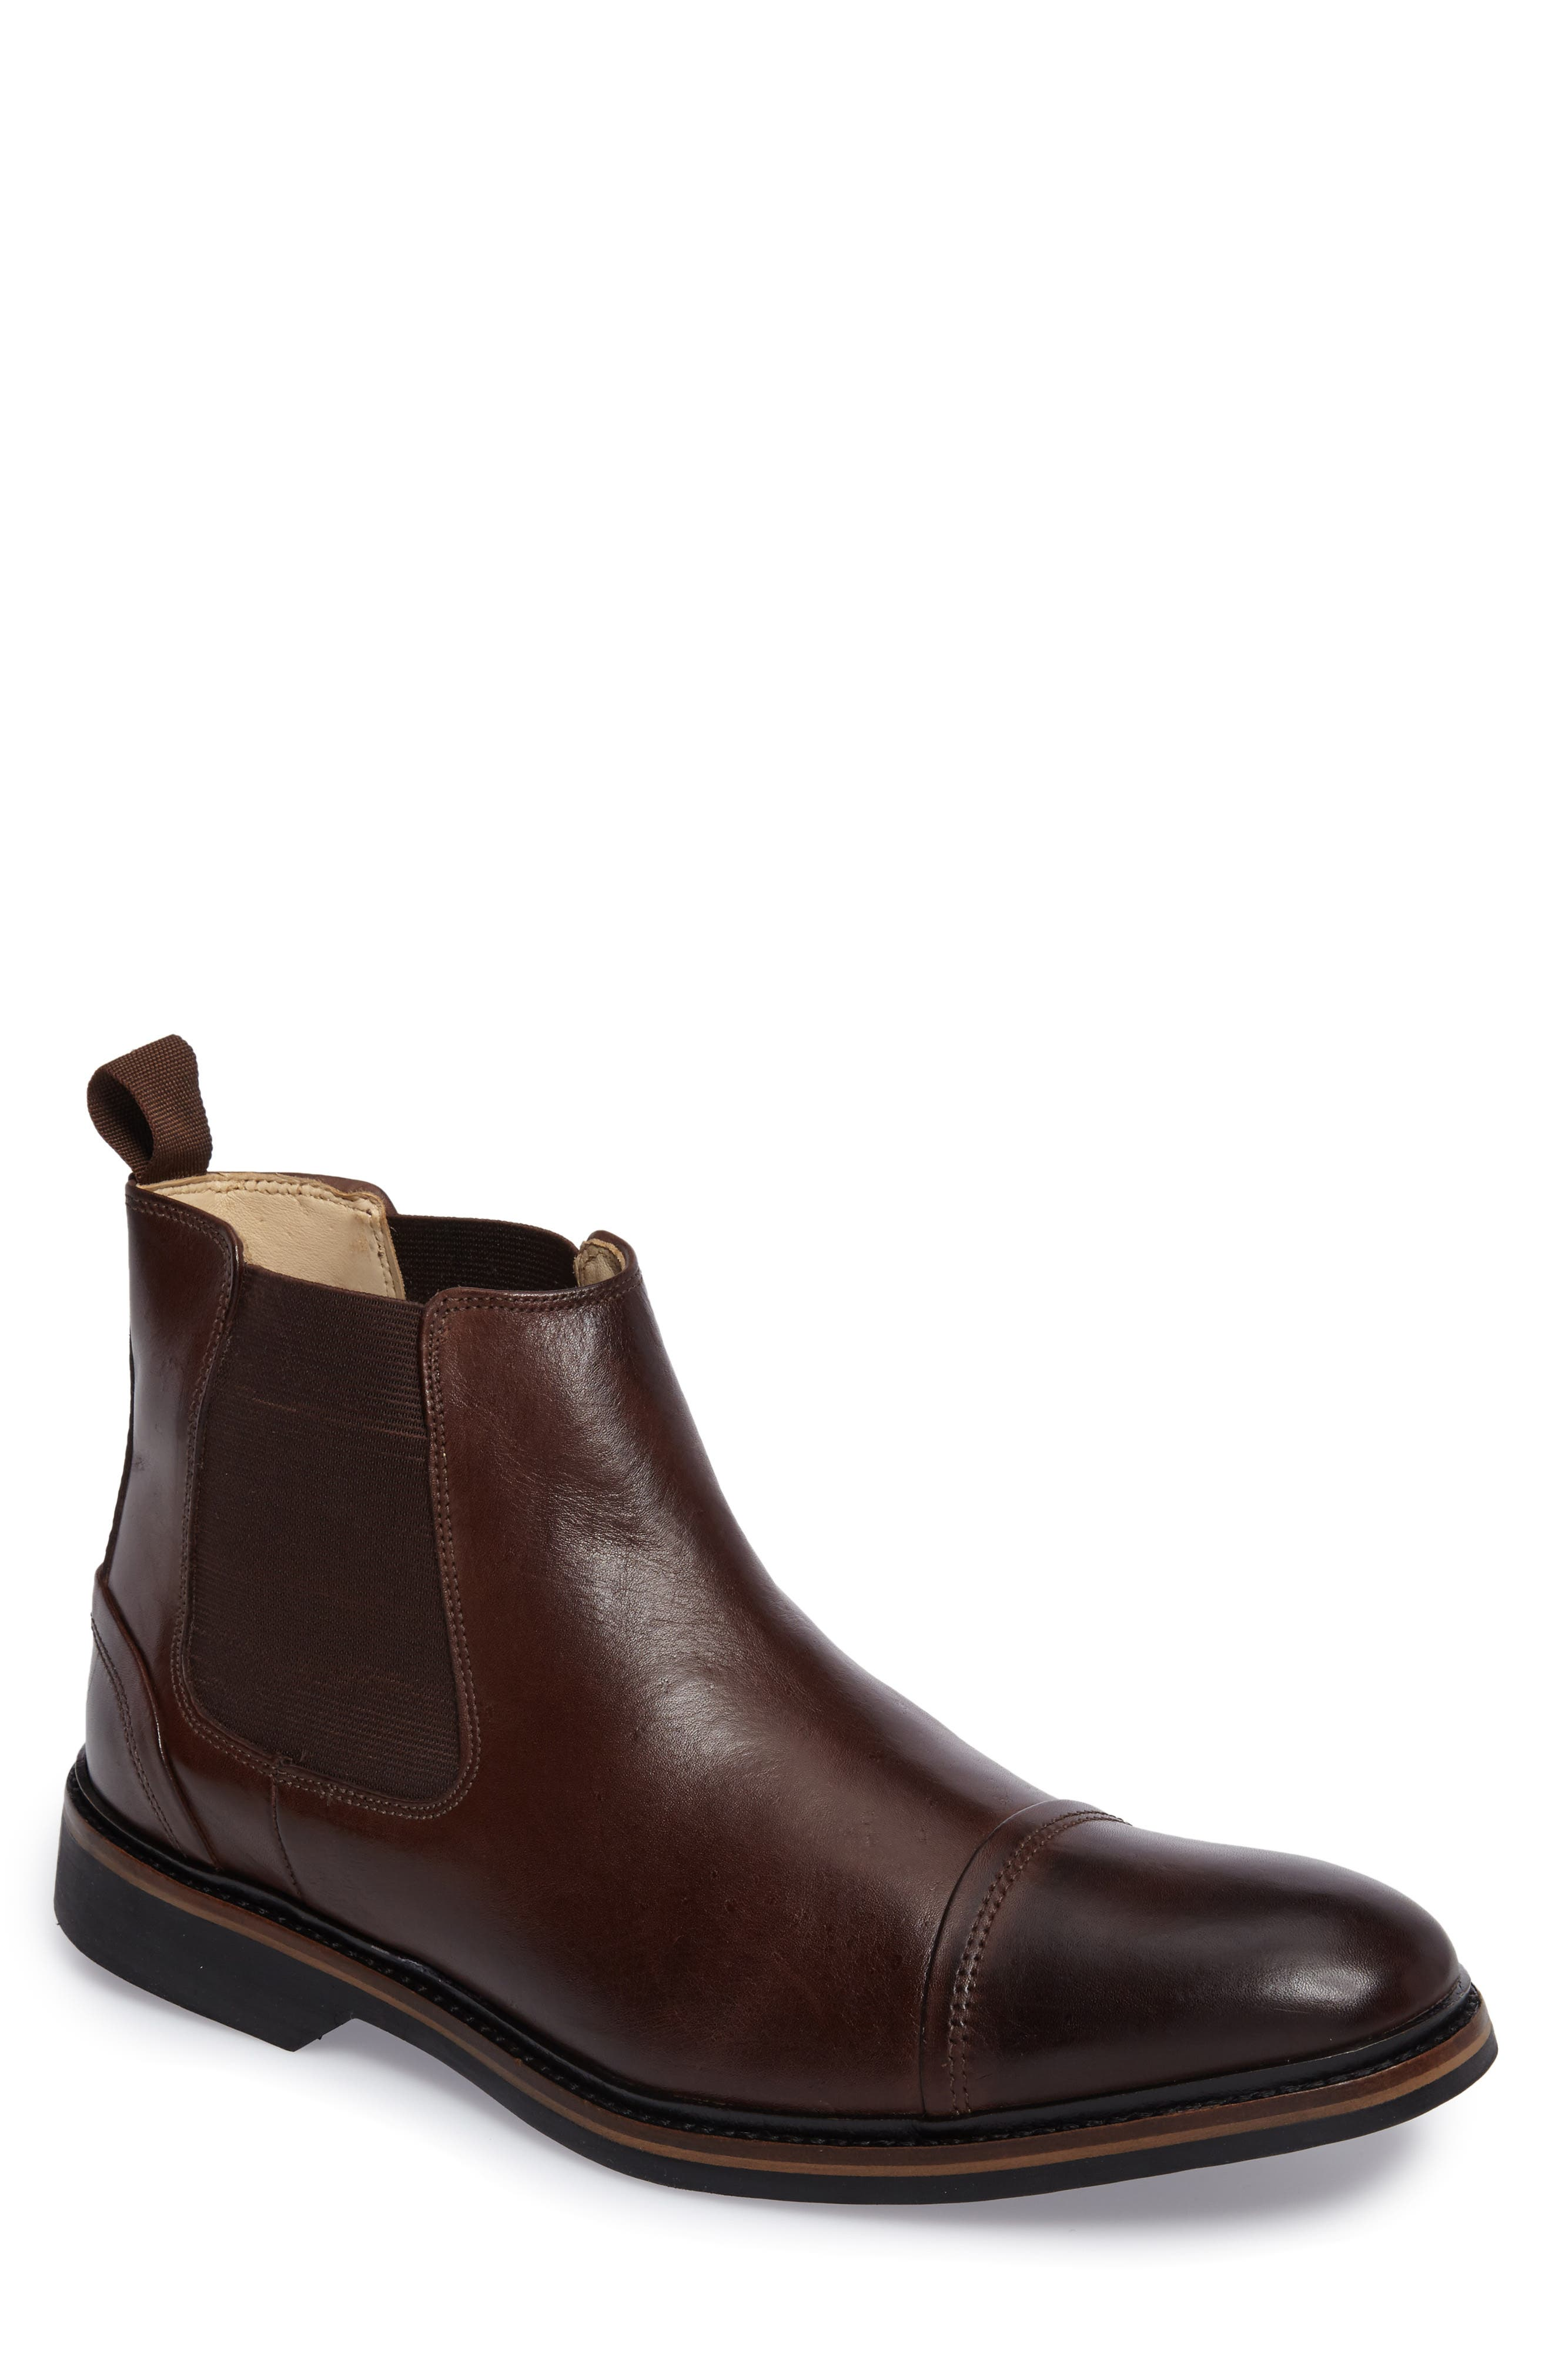 Floriano Chelsea Boot,                         Main,                         color, 200